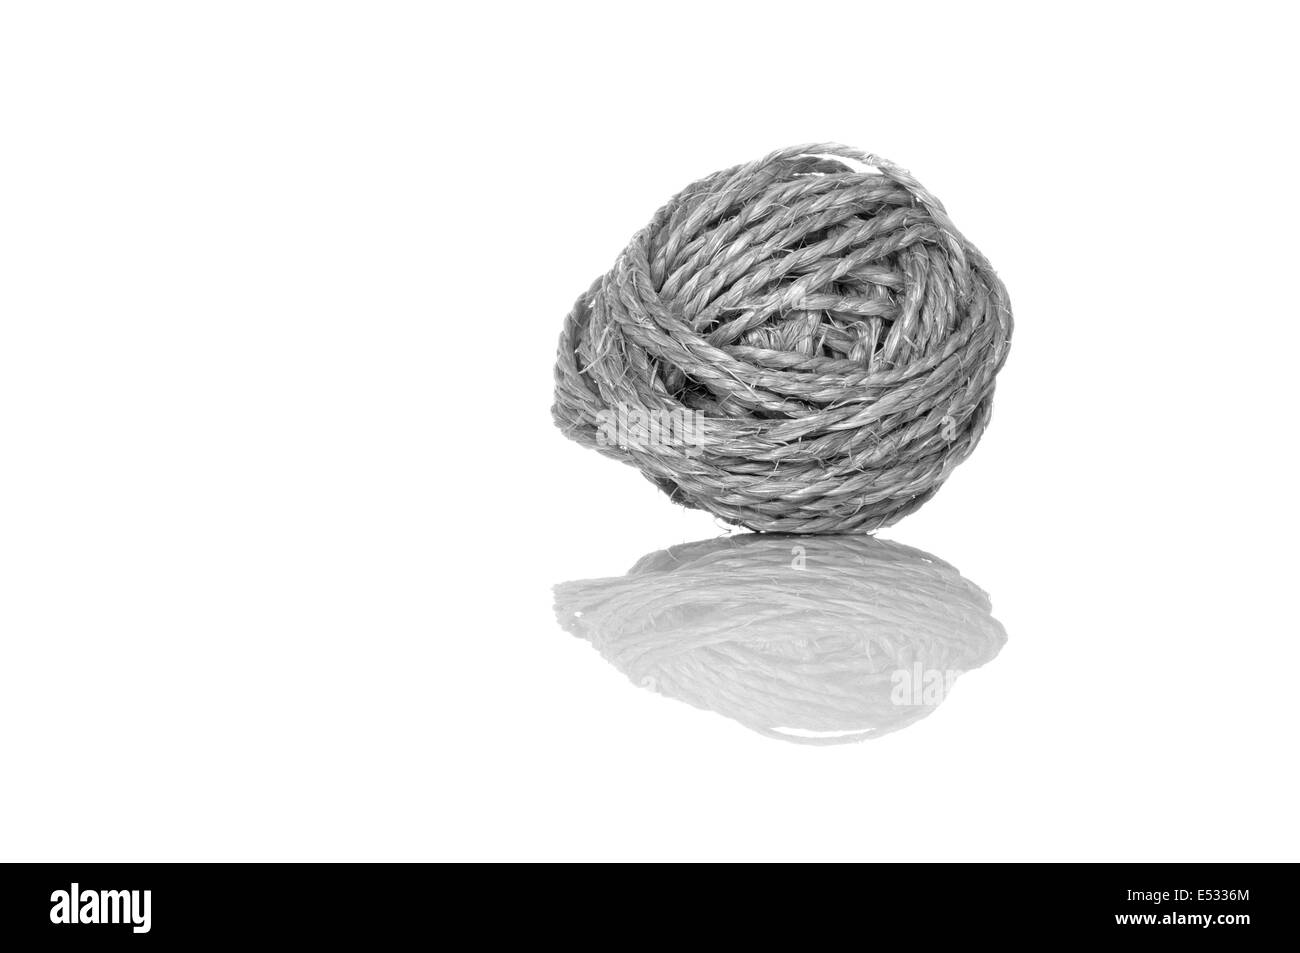 Ball of sisal cord with reflection Stock Photo